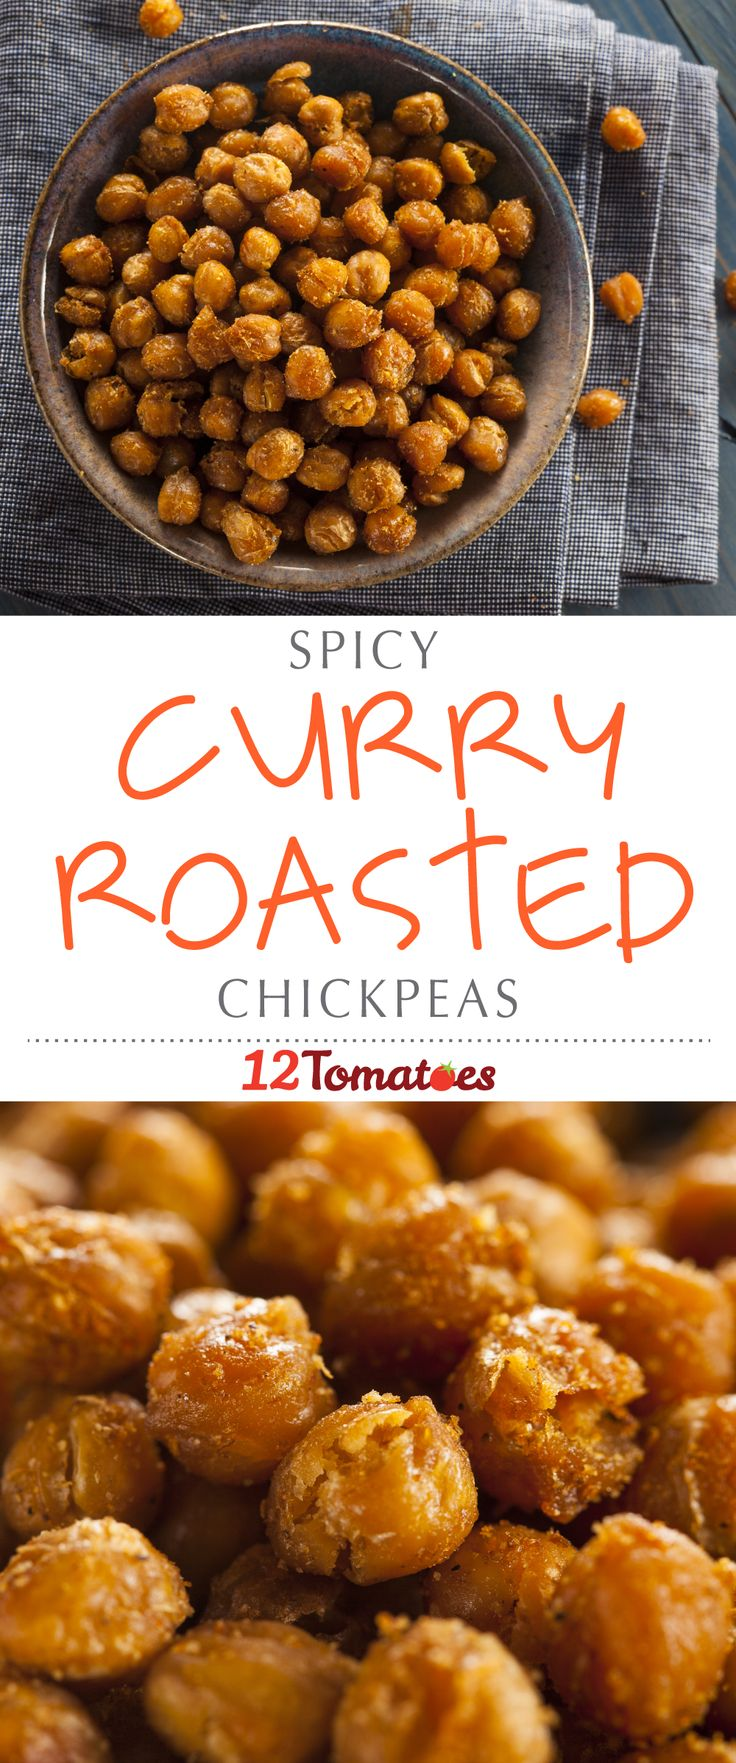 Curry Roasted Chickpeas:  Chickpeas have great nutritional value and are packed with protein and fiber, so this isn't just a snack that will leave you feeling ravenous an hour later; they'll actually tide you over until your next meal.